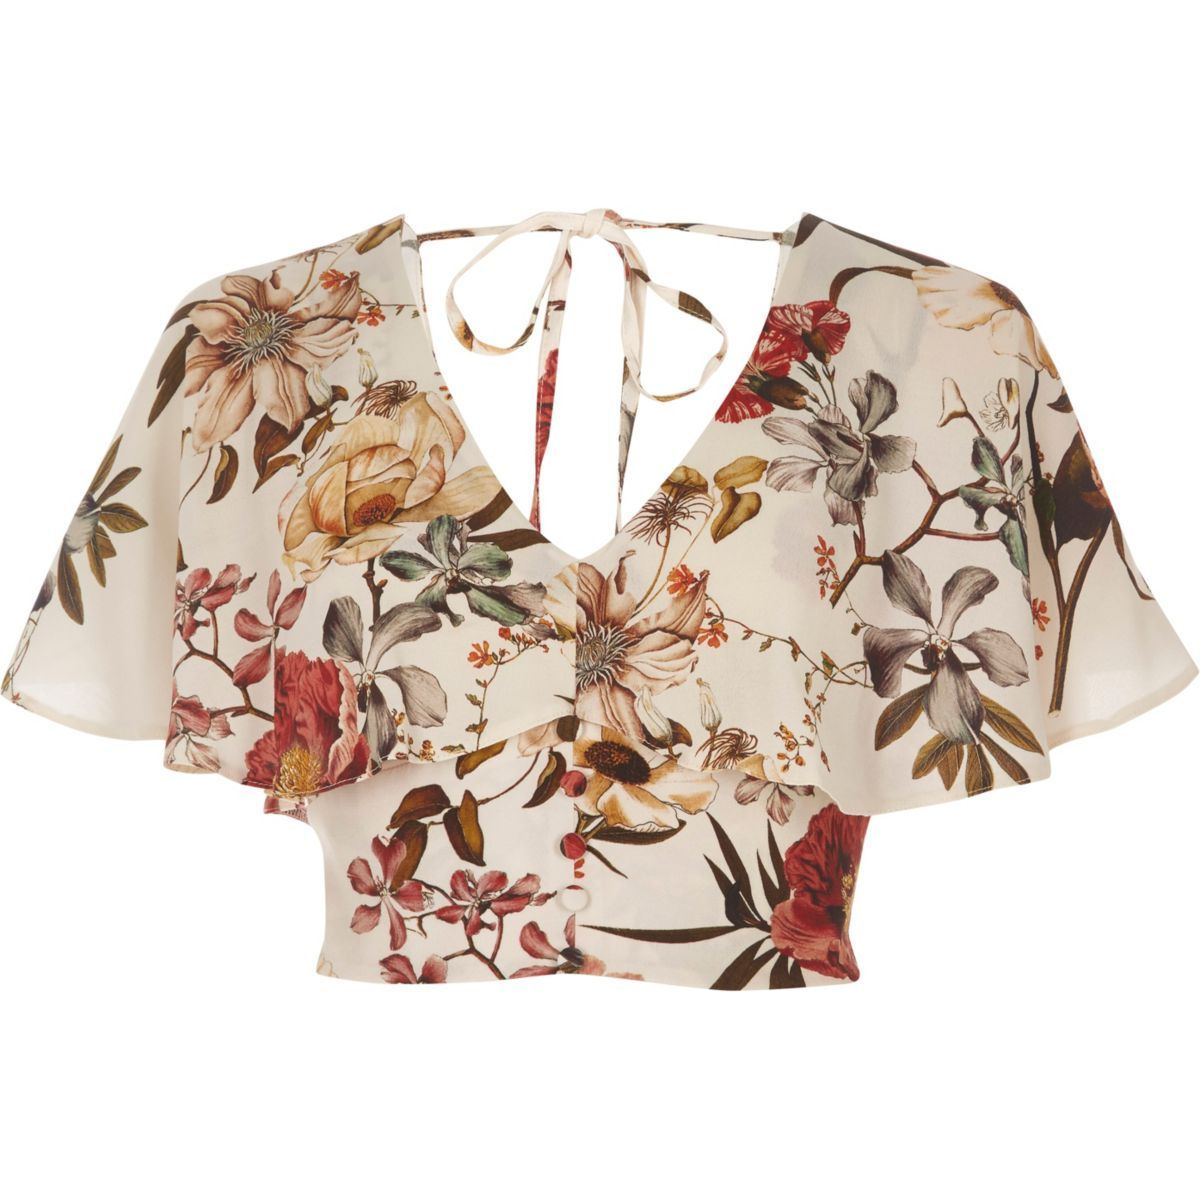 Crepe fabric Floral print Short cap sleeve Frill overlay Button placket Tie back detail Cropped length Loose fit V neck Our model wears a UK 8 and is 175cm/5'9'' tall